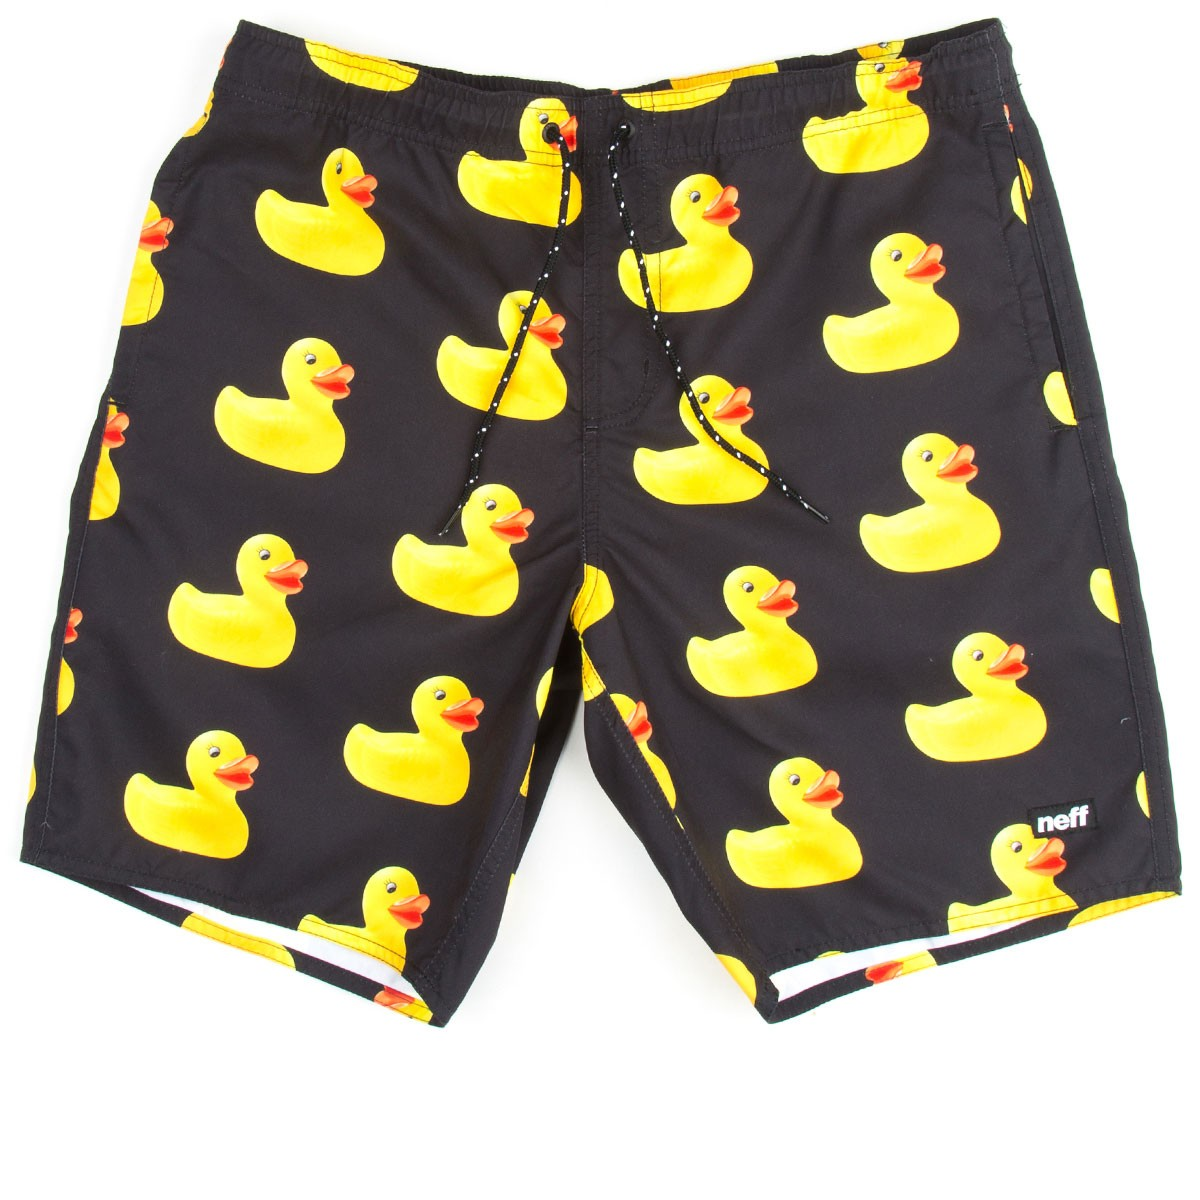 Neff Rubber Ducky Hot Tub Shorts - Black